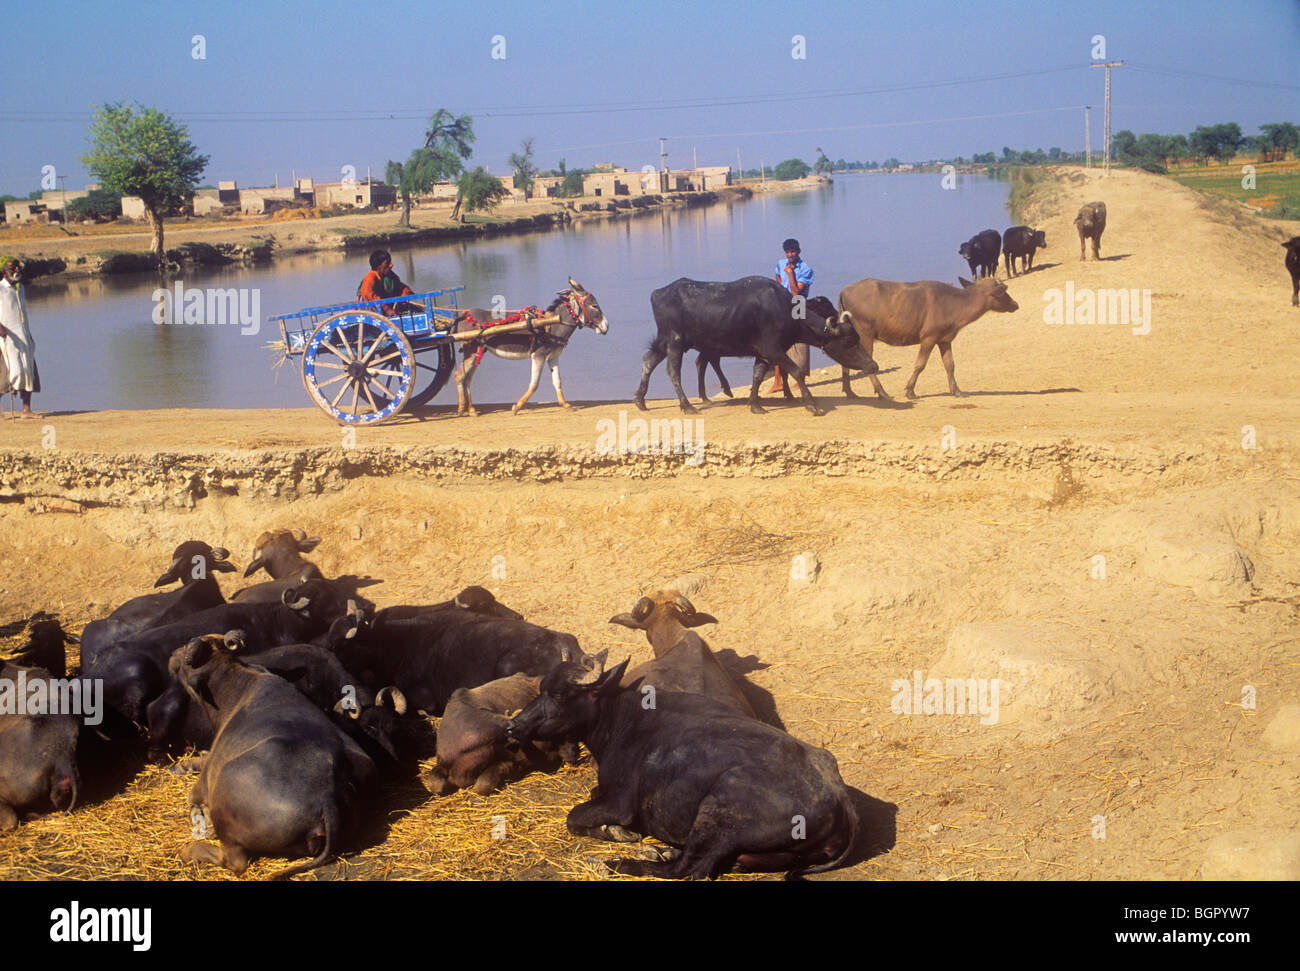 Rural scene with canal and water buffalo, Sindh province